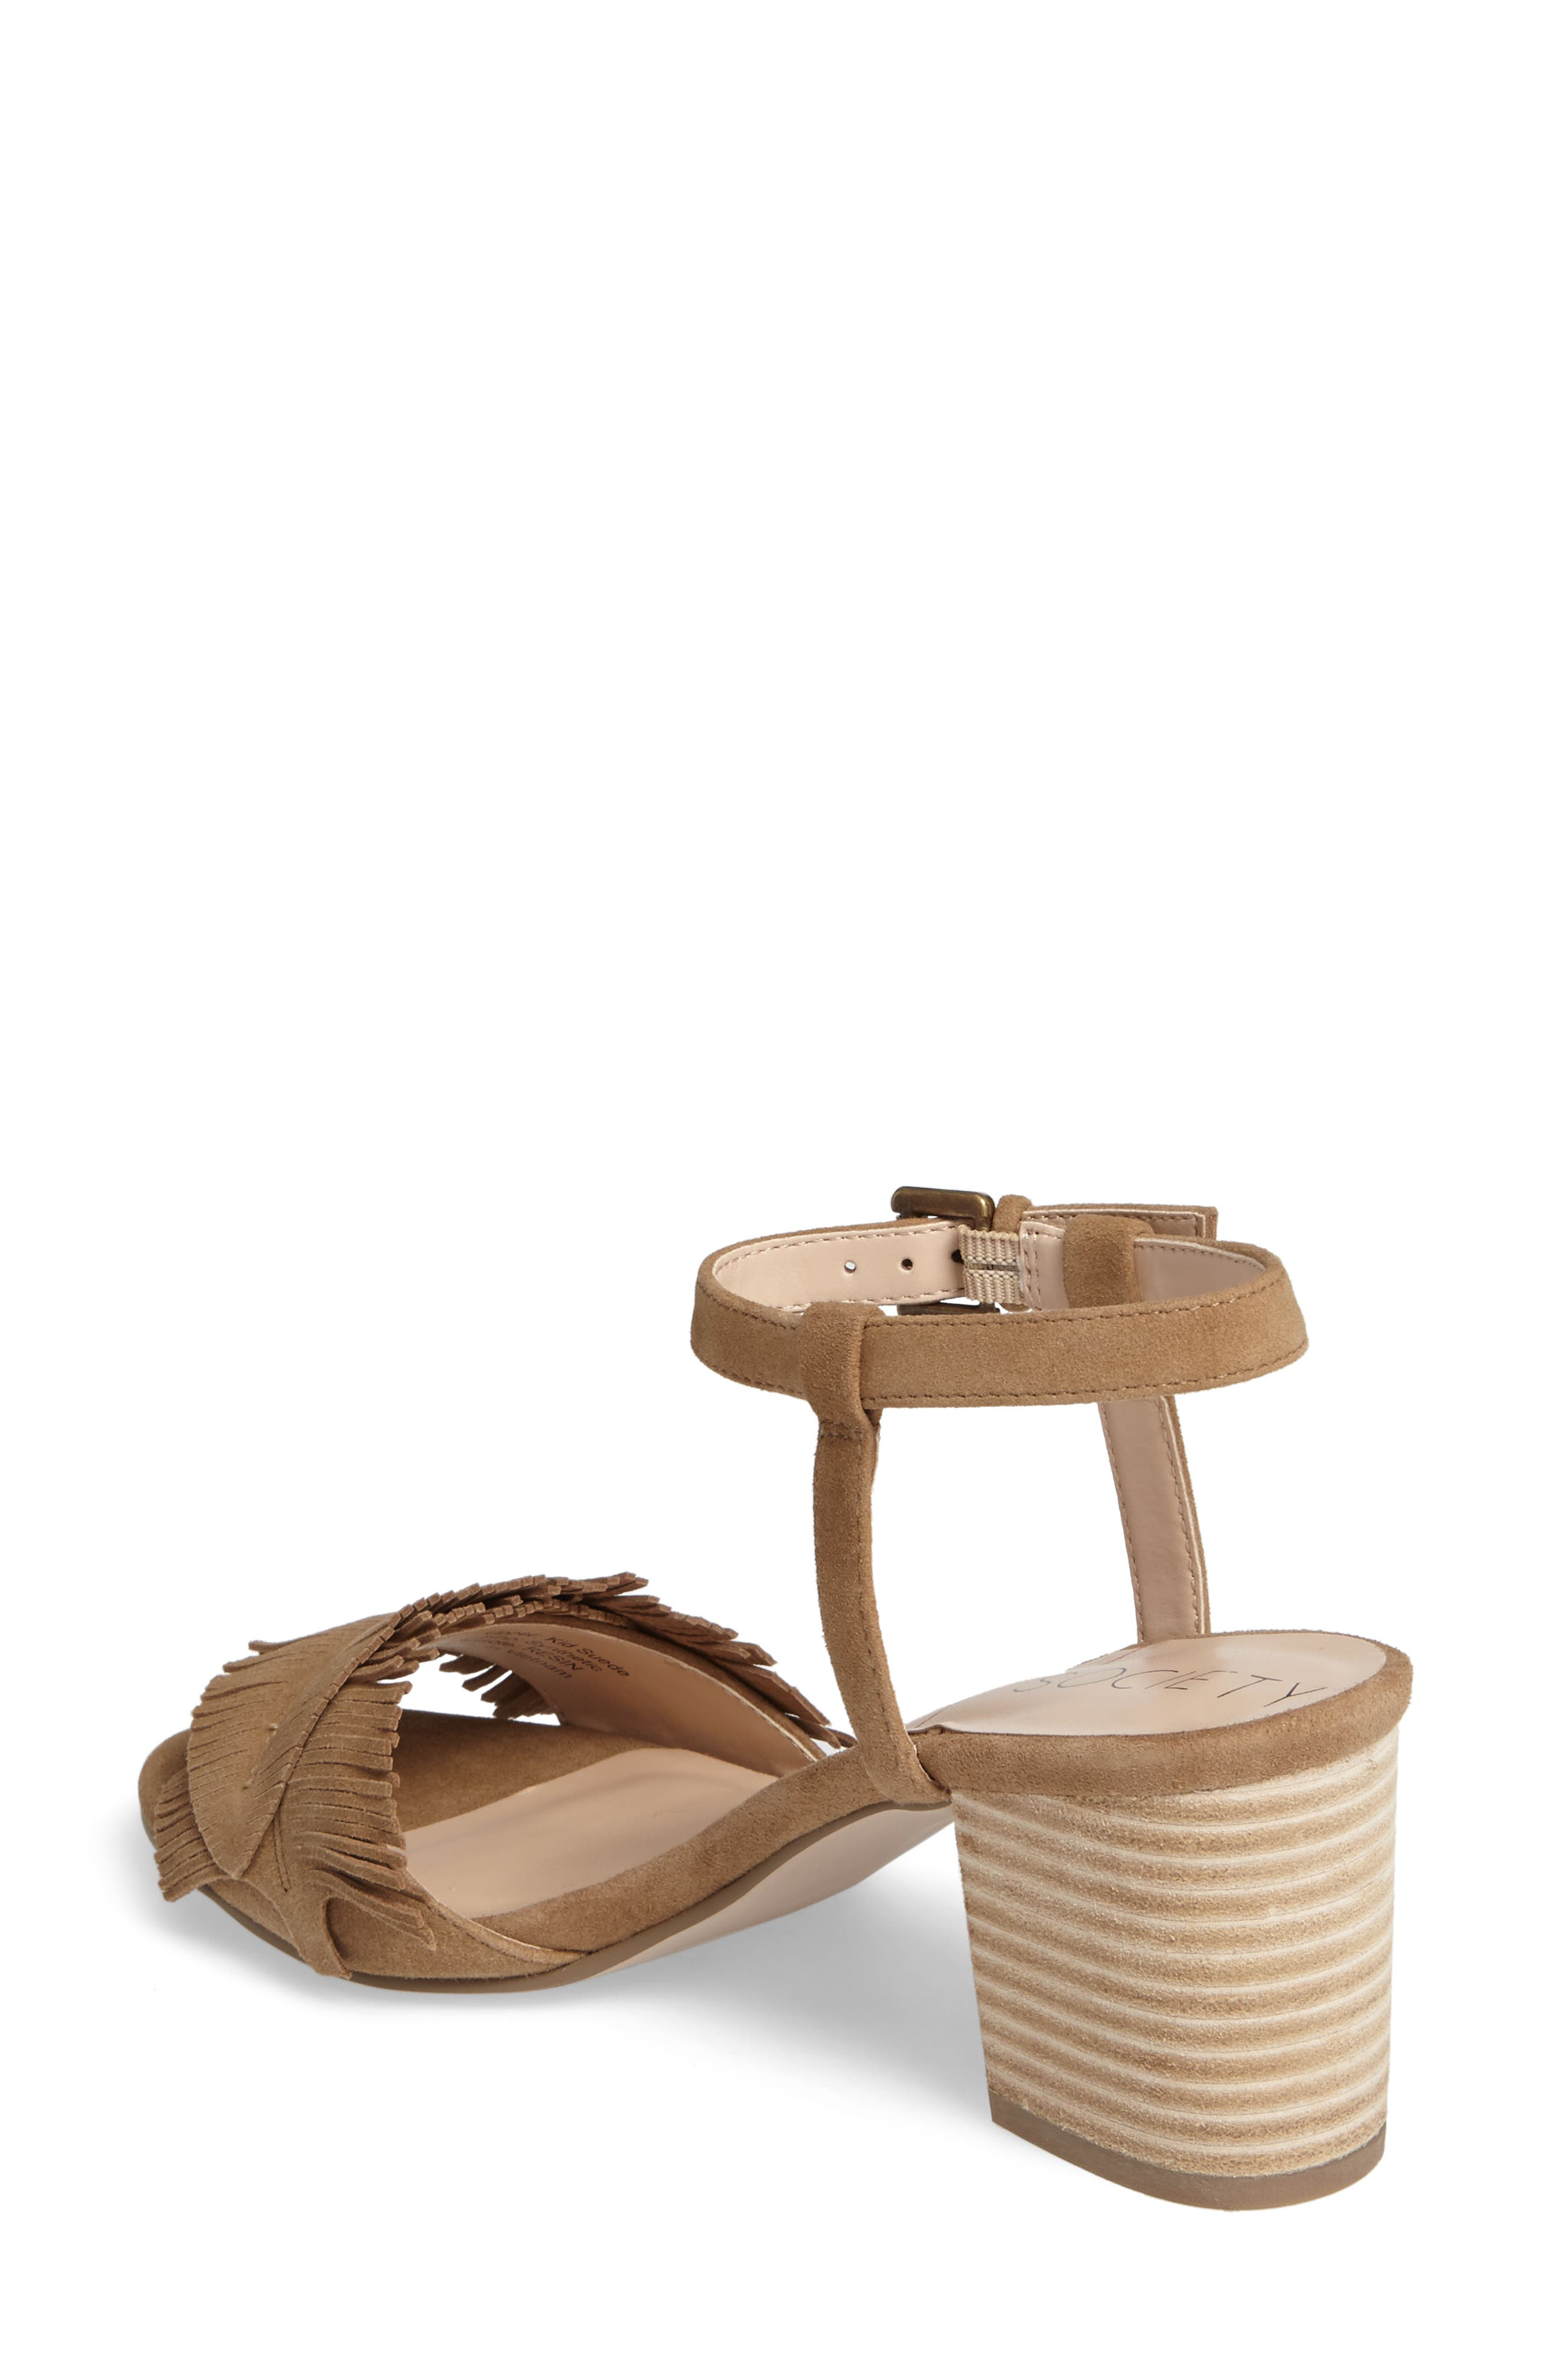 Sepia Fringe Sandal,                             Alternate thumbnail 2, color,                             246